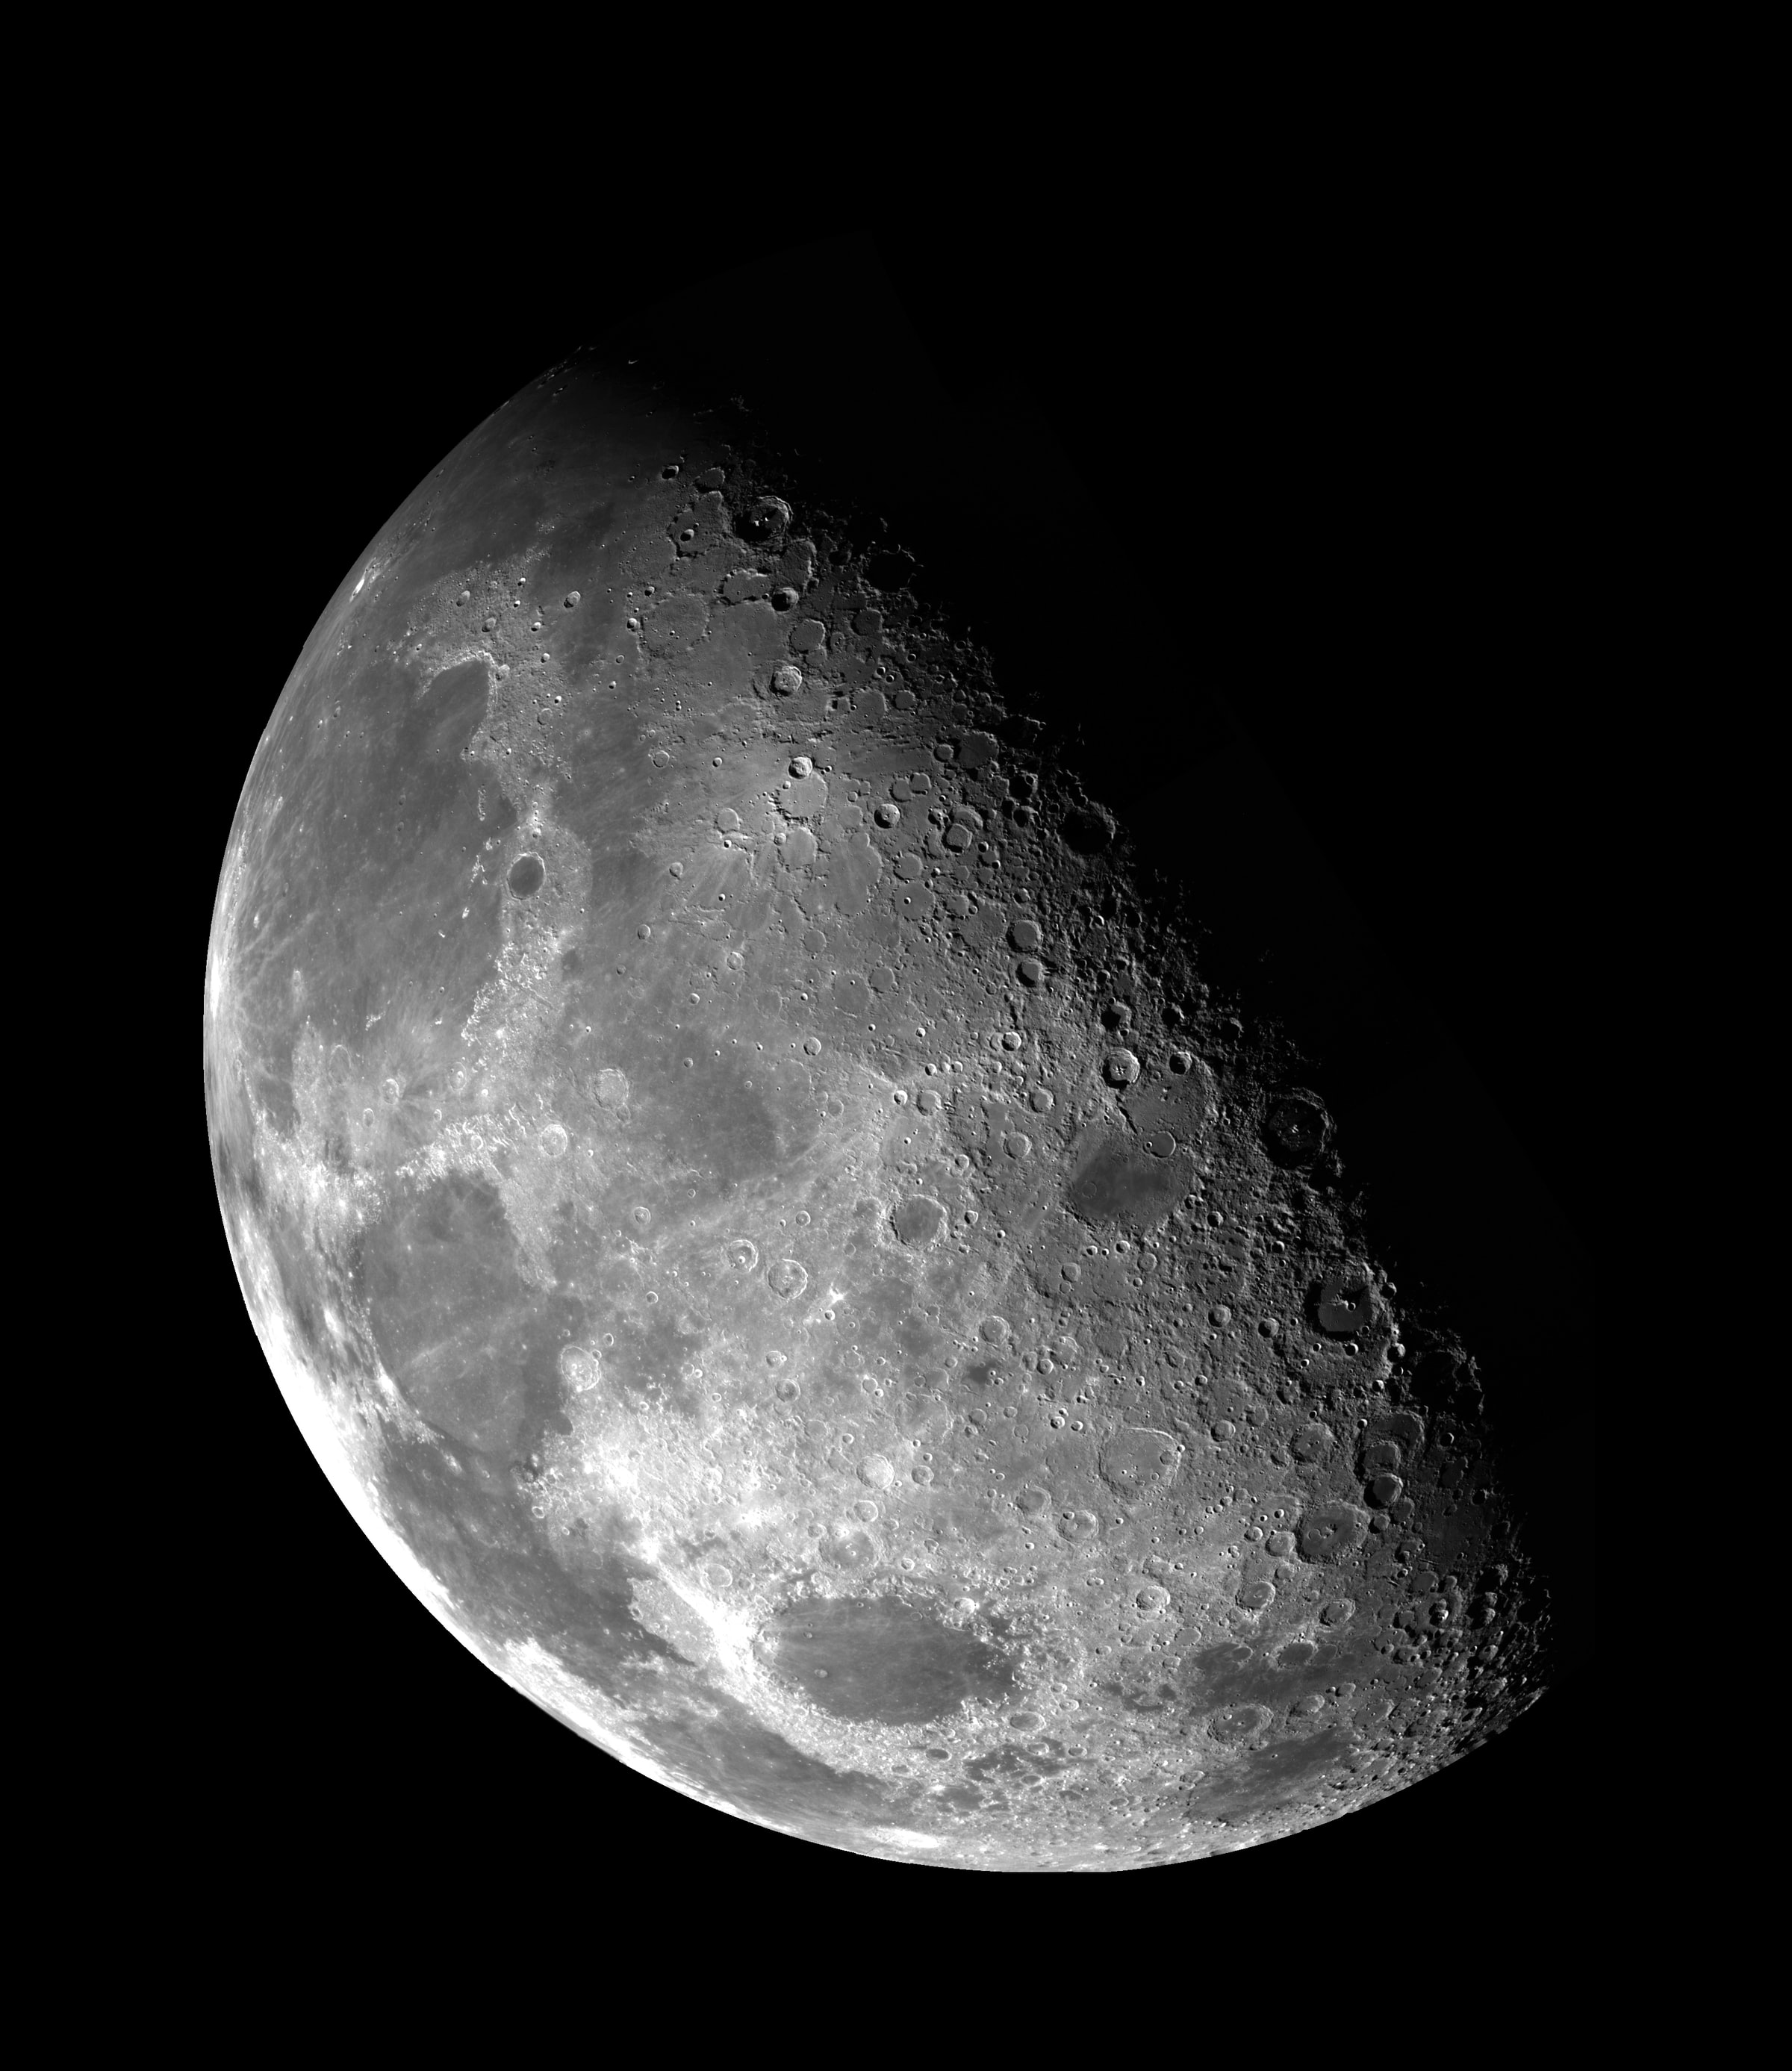 NASA picture of the moon